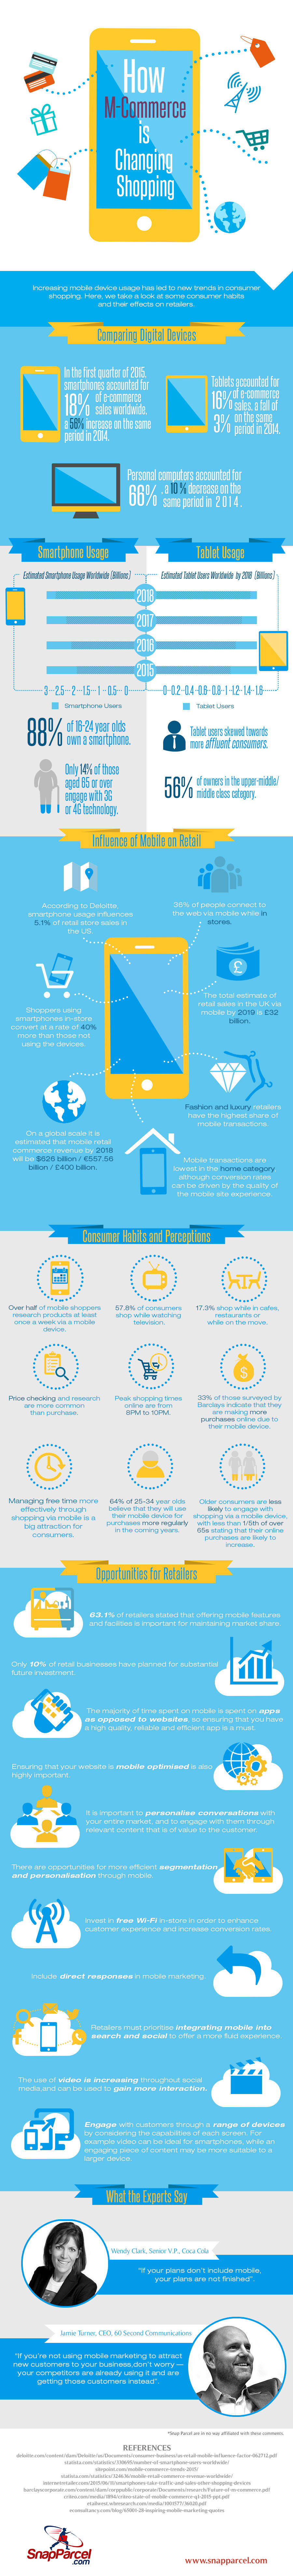 [INFORGRAPHIC] How m-Commerce is Changing Shopping